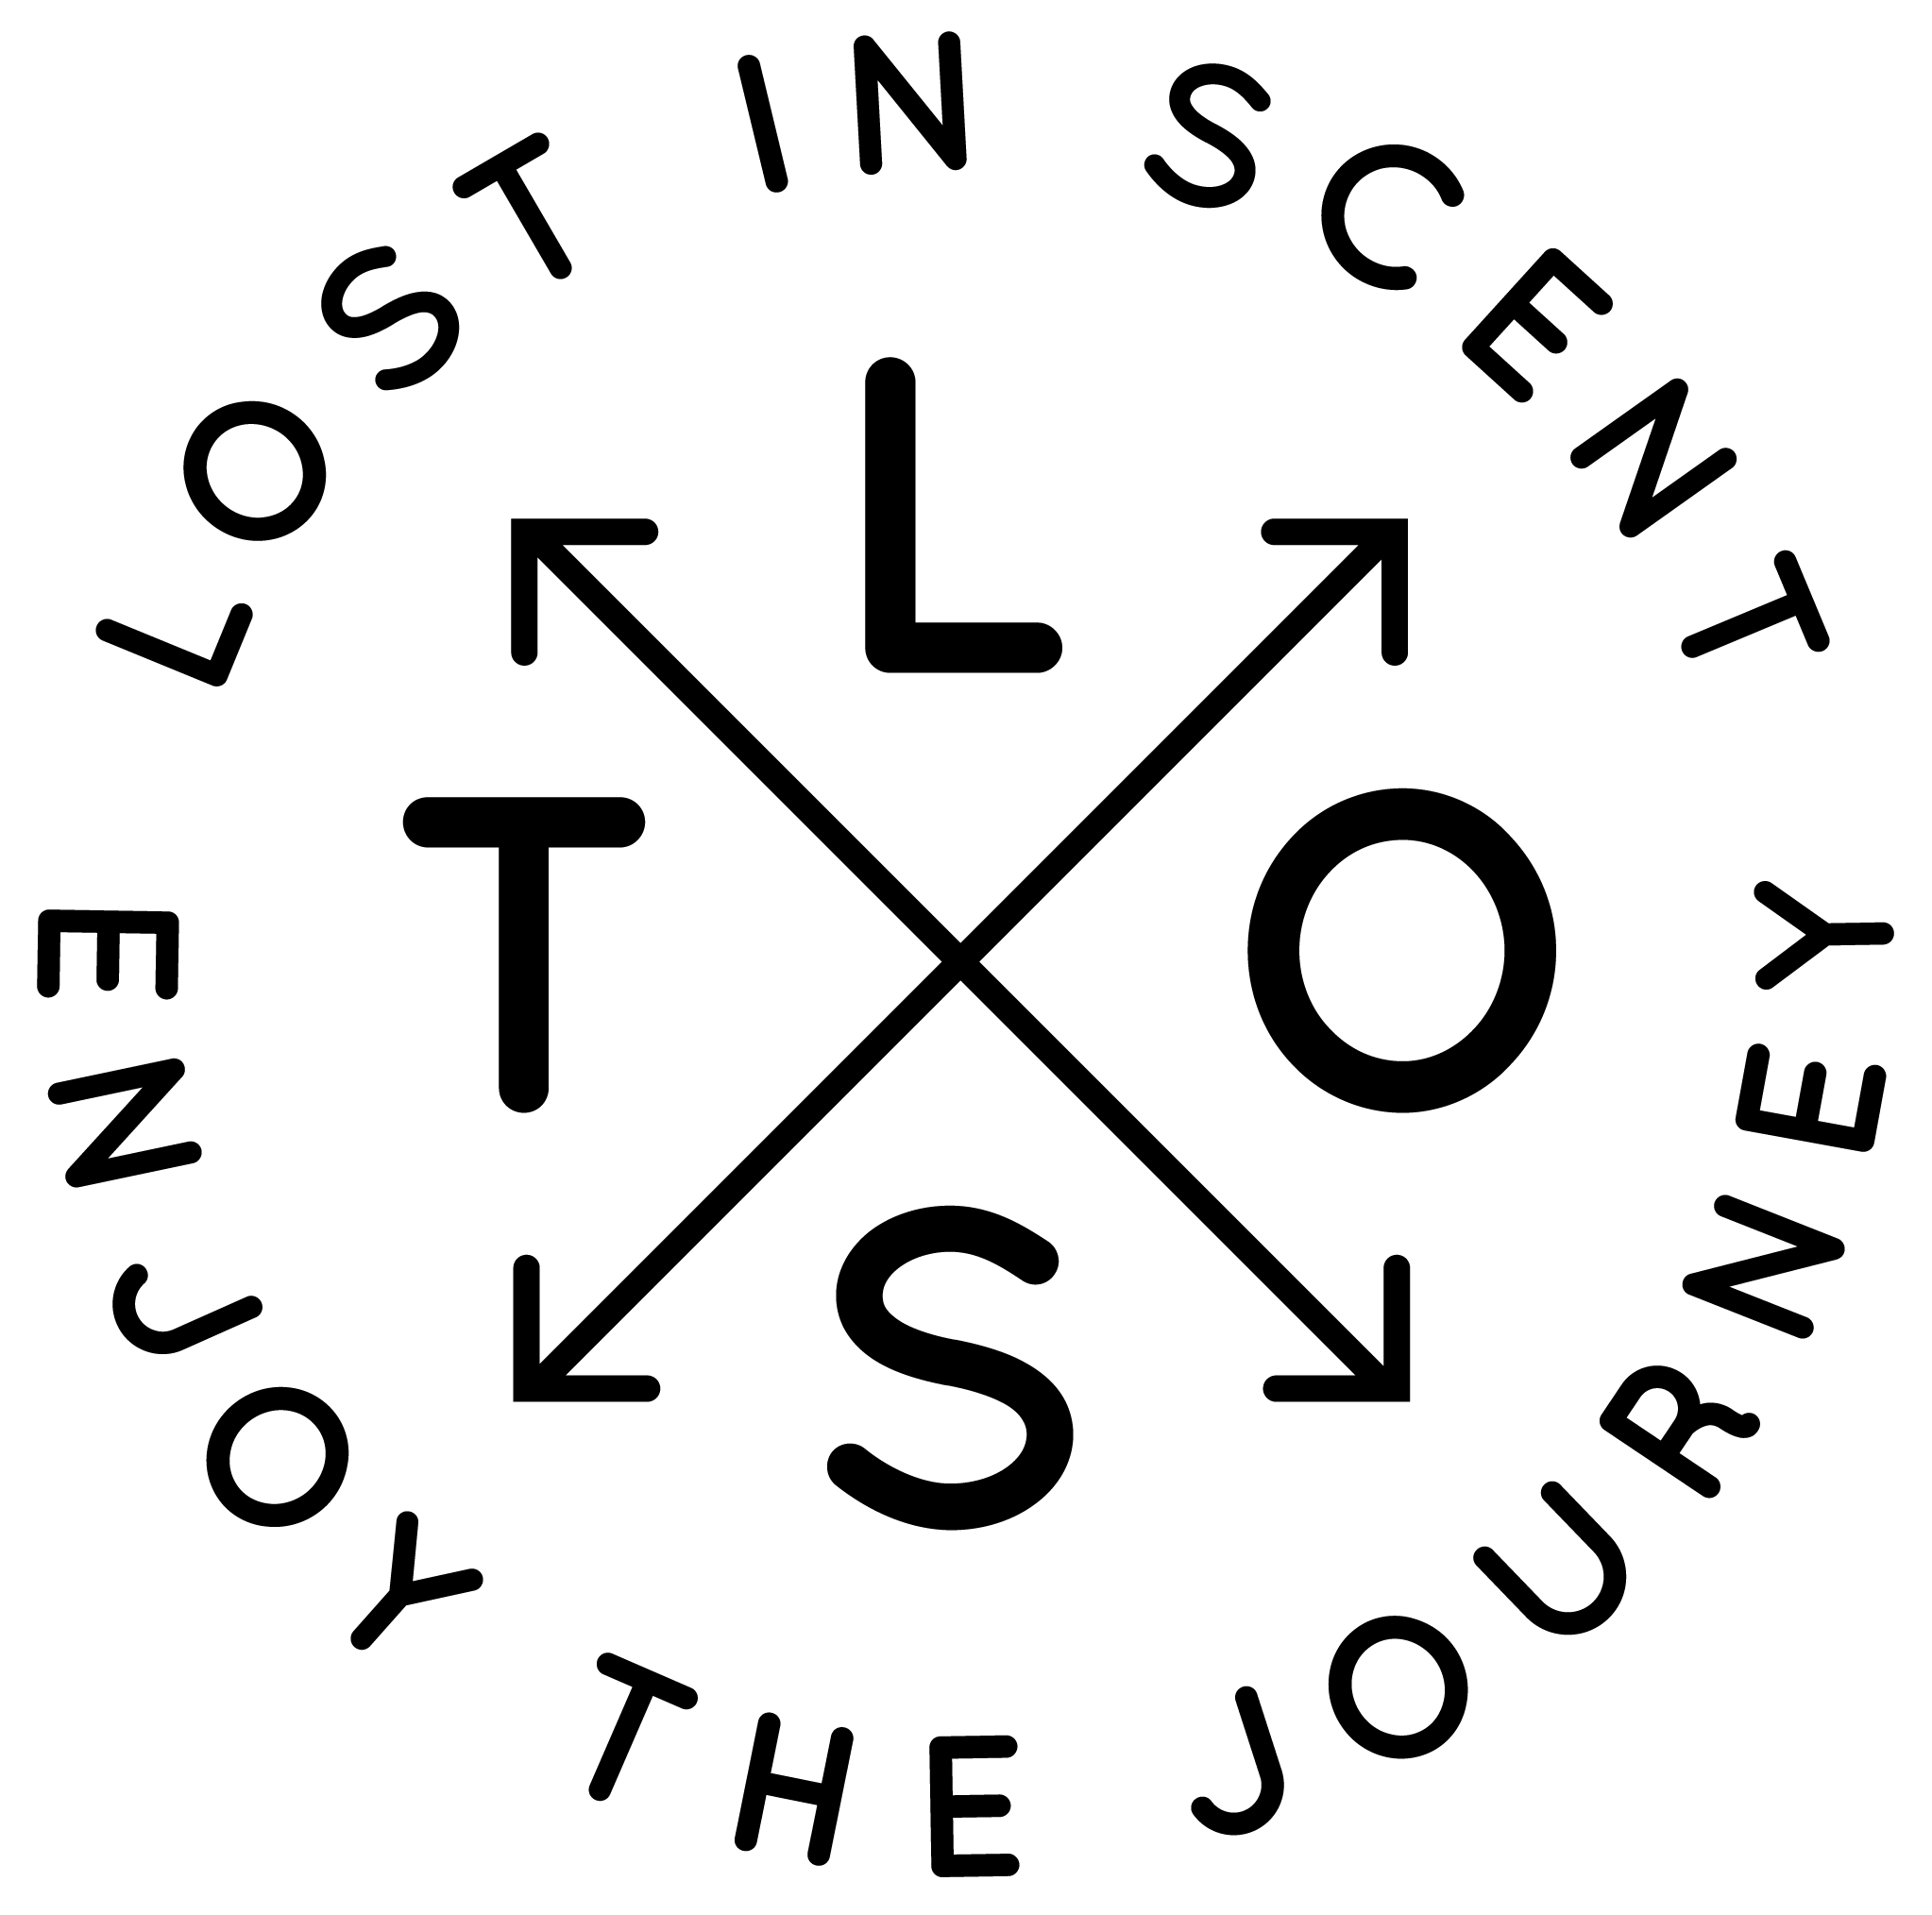 LIS_logo_round_blk_clear.png